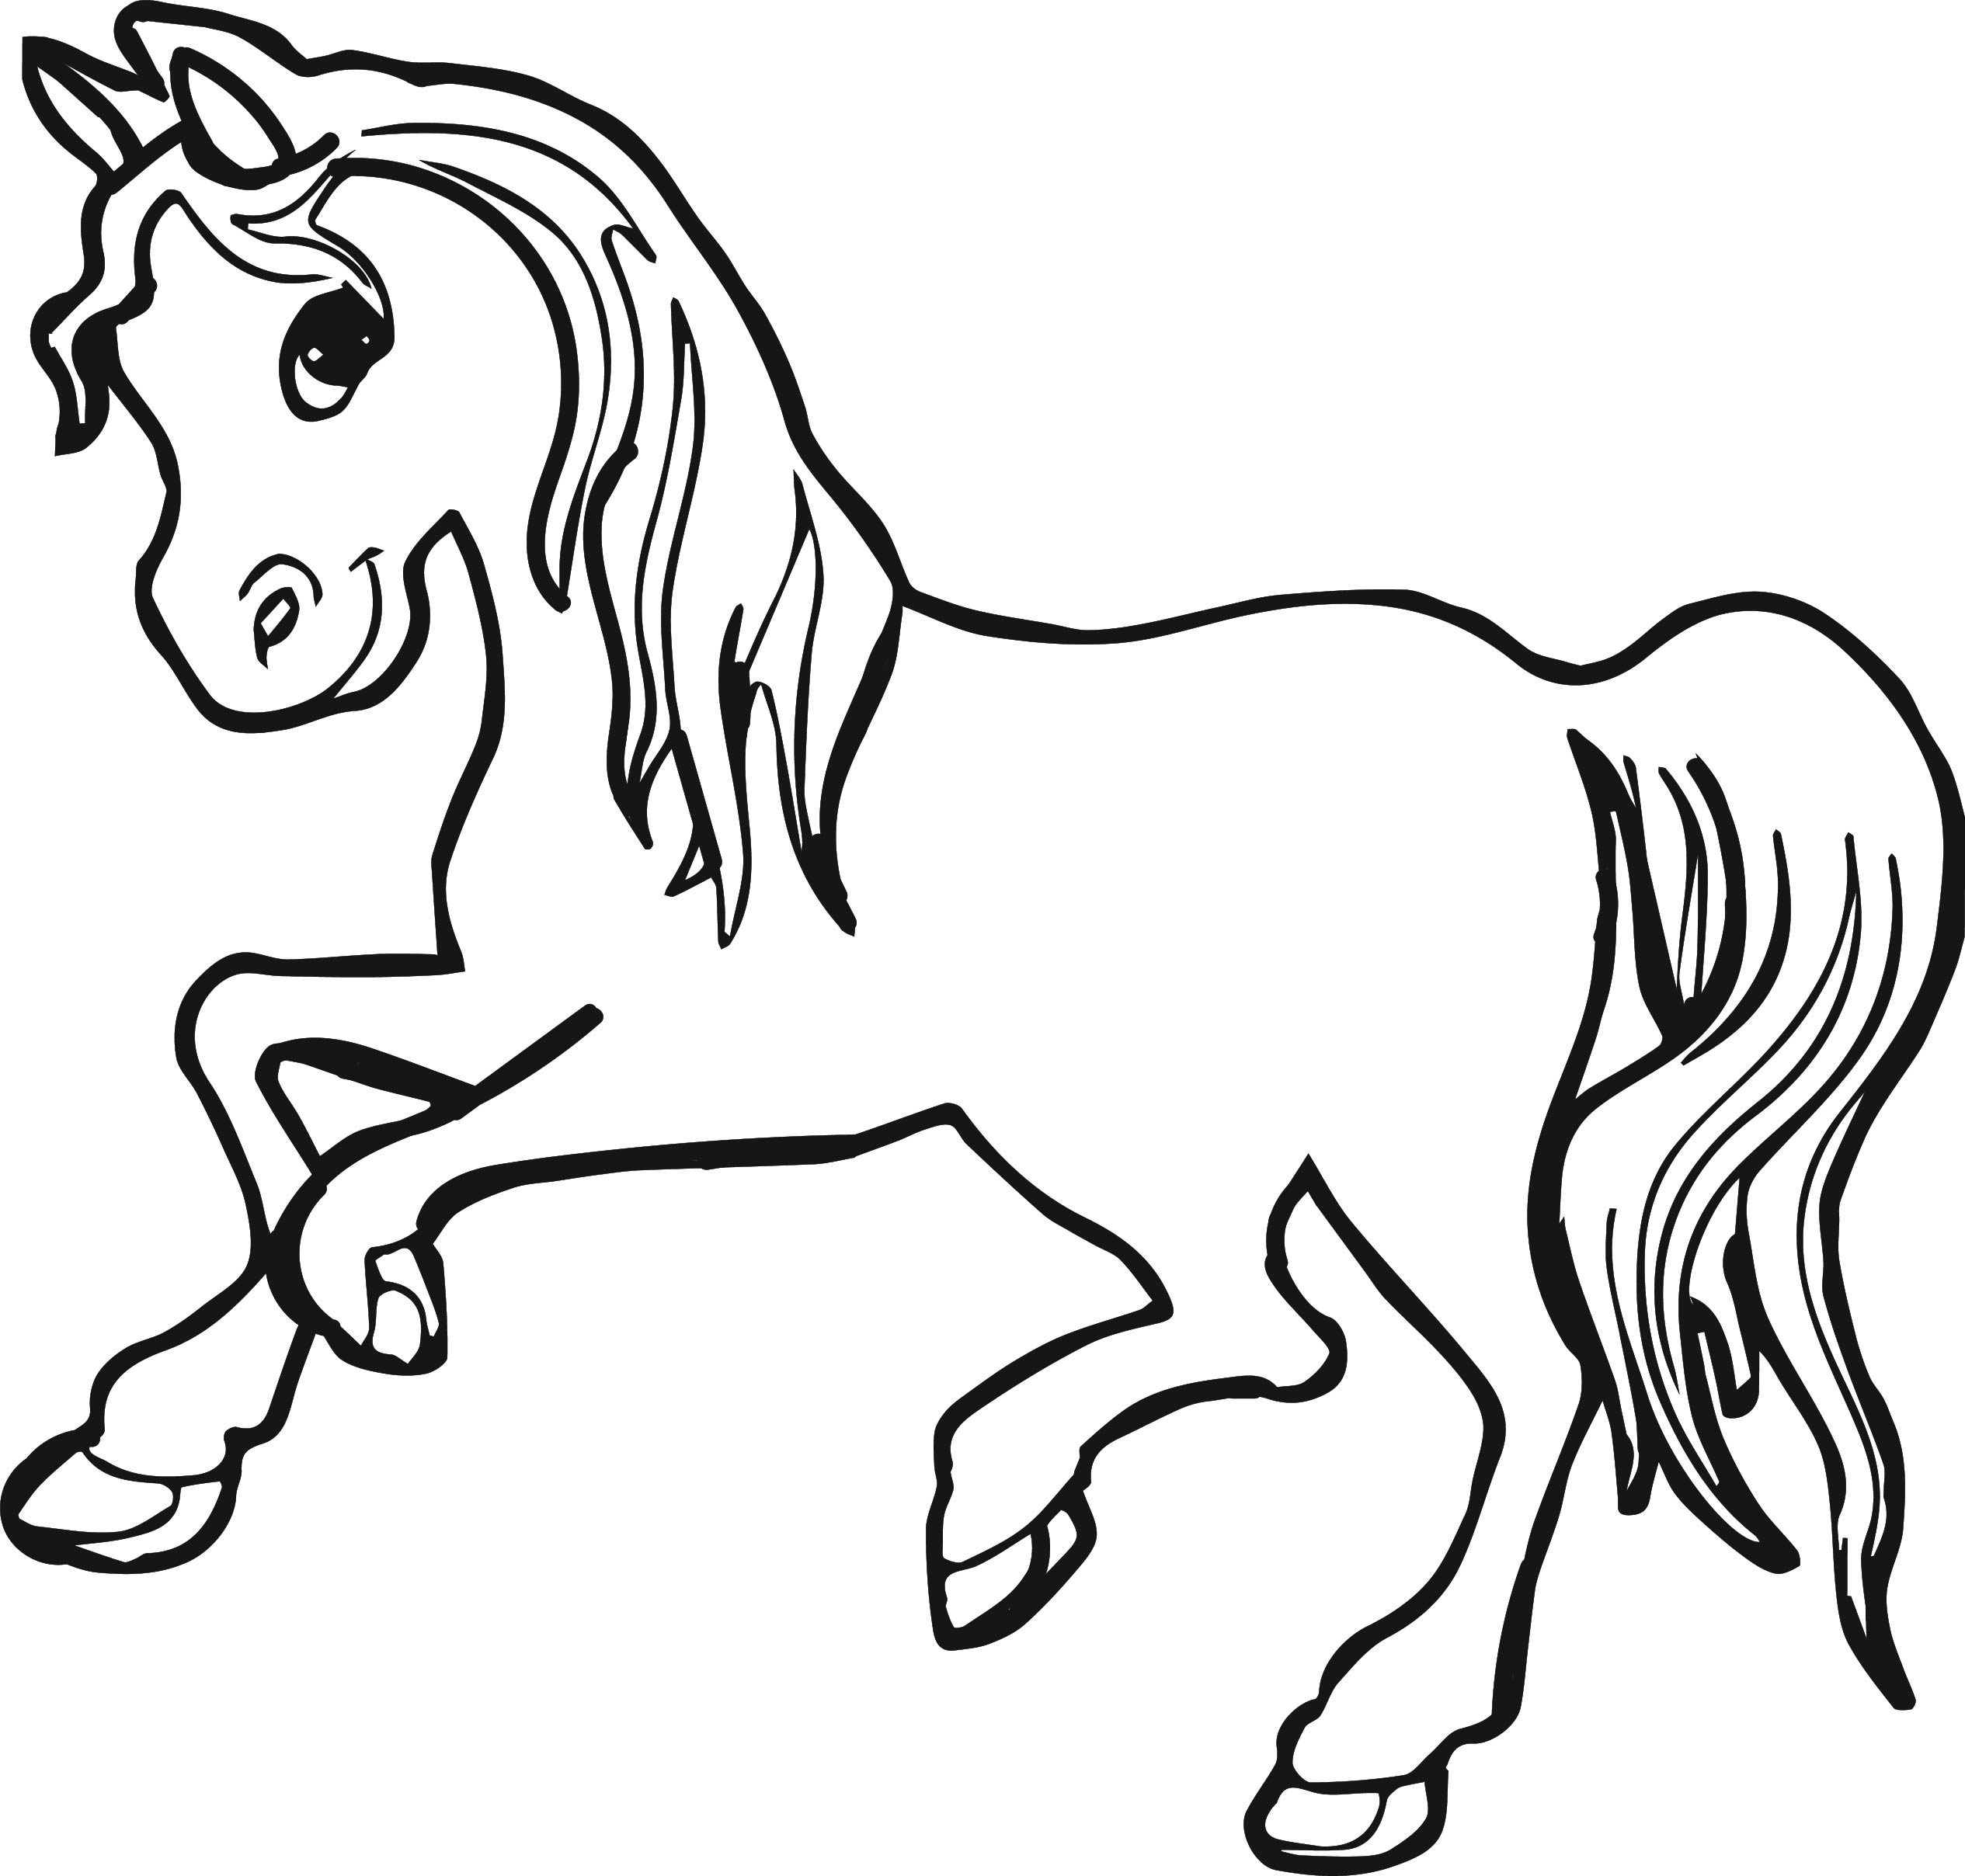 coloring picture color for kids pets coloring pages best coloring pages for kids picture for coloring color kids